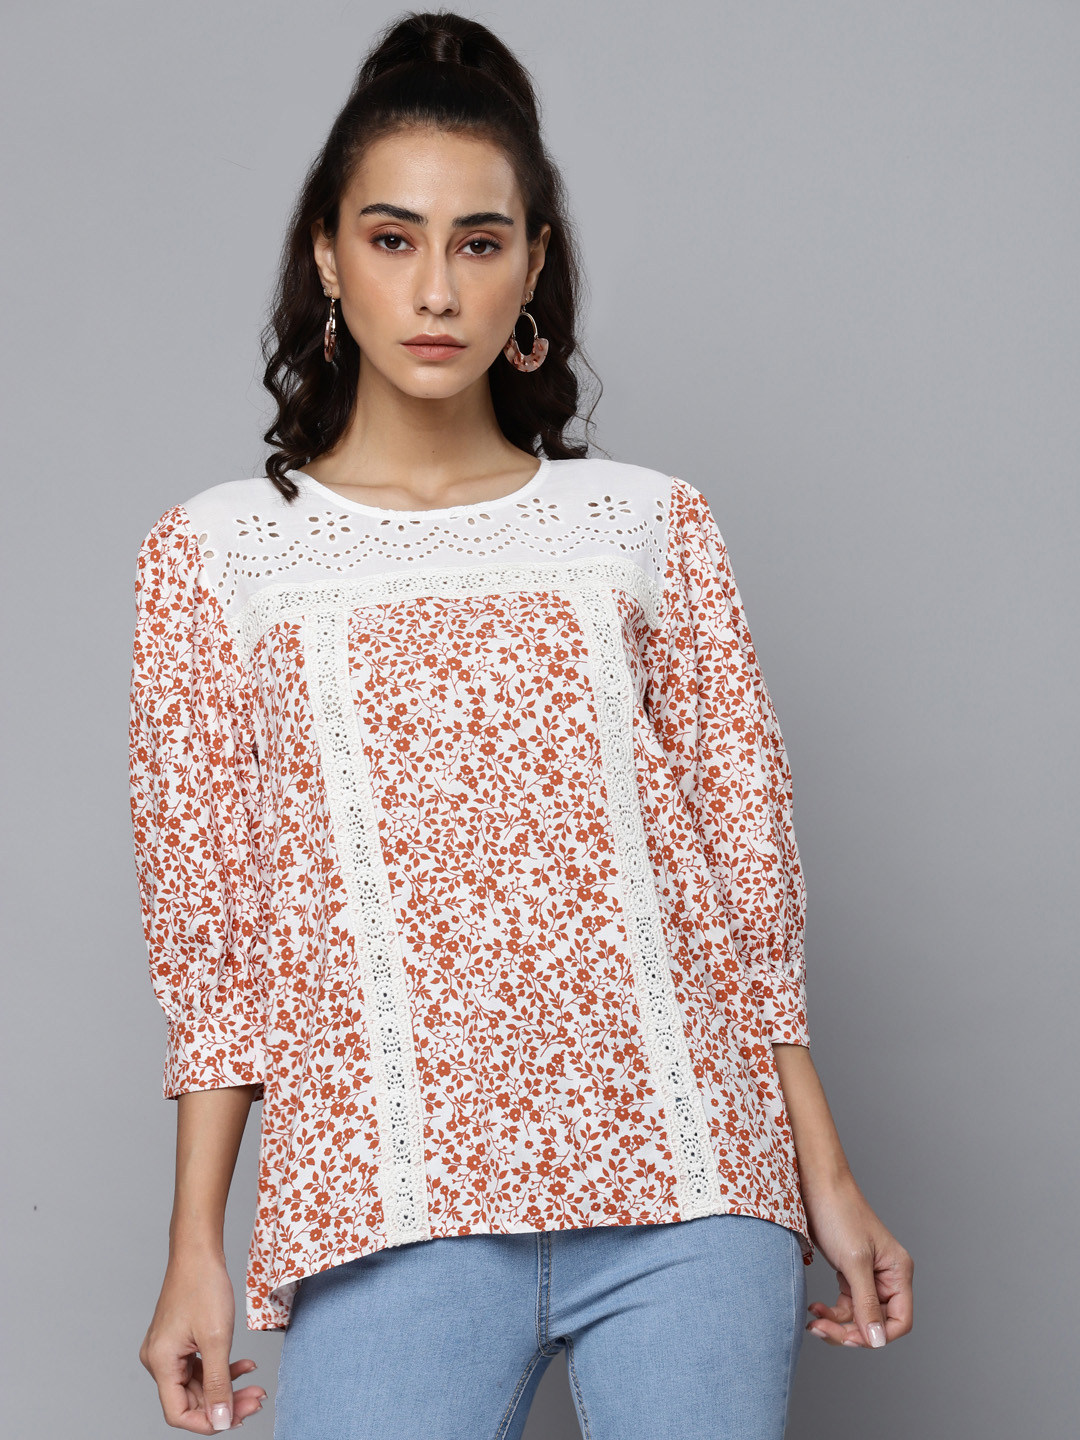 Printed Top with Lace Detail & Schiffli Yoke